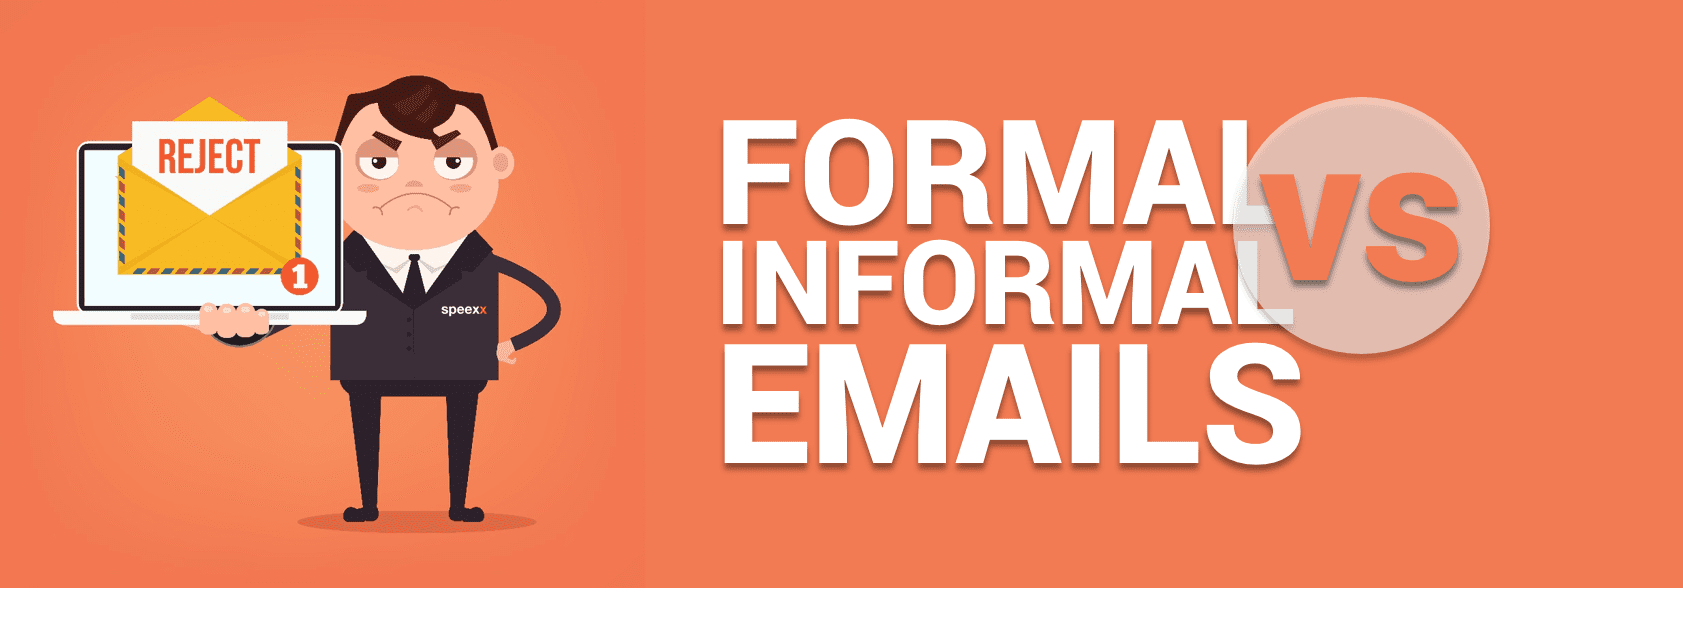 Formal Vs Informal Emails Speexx